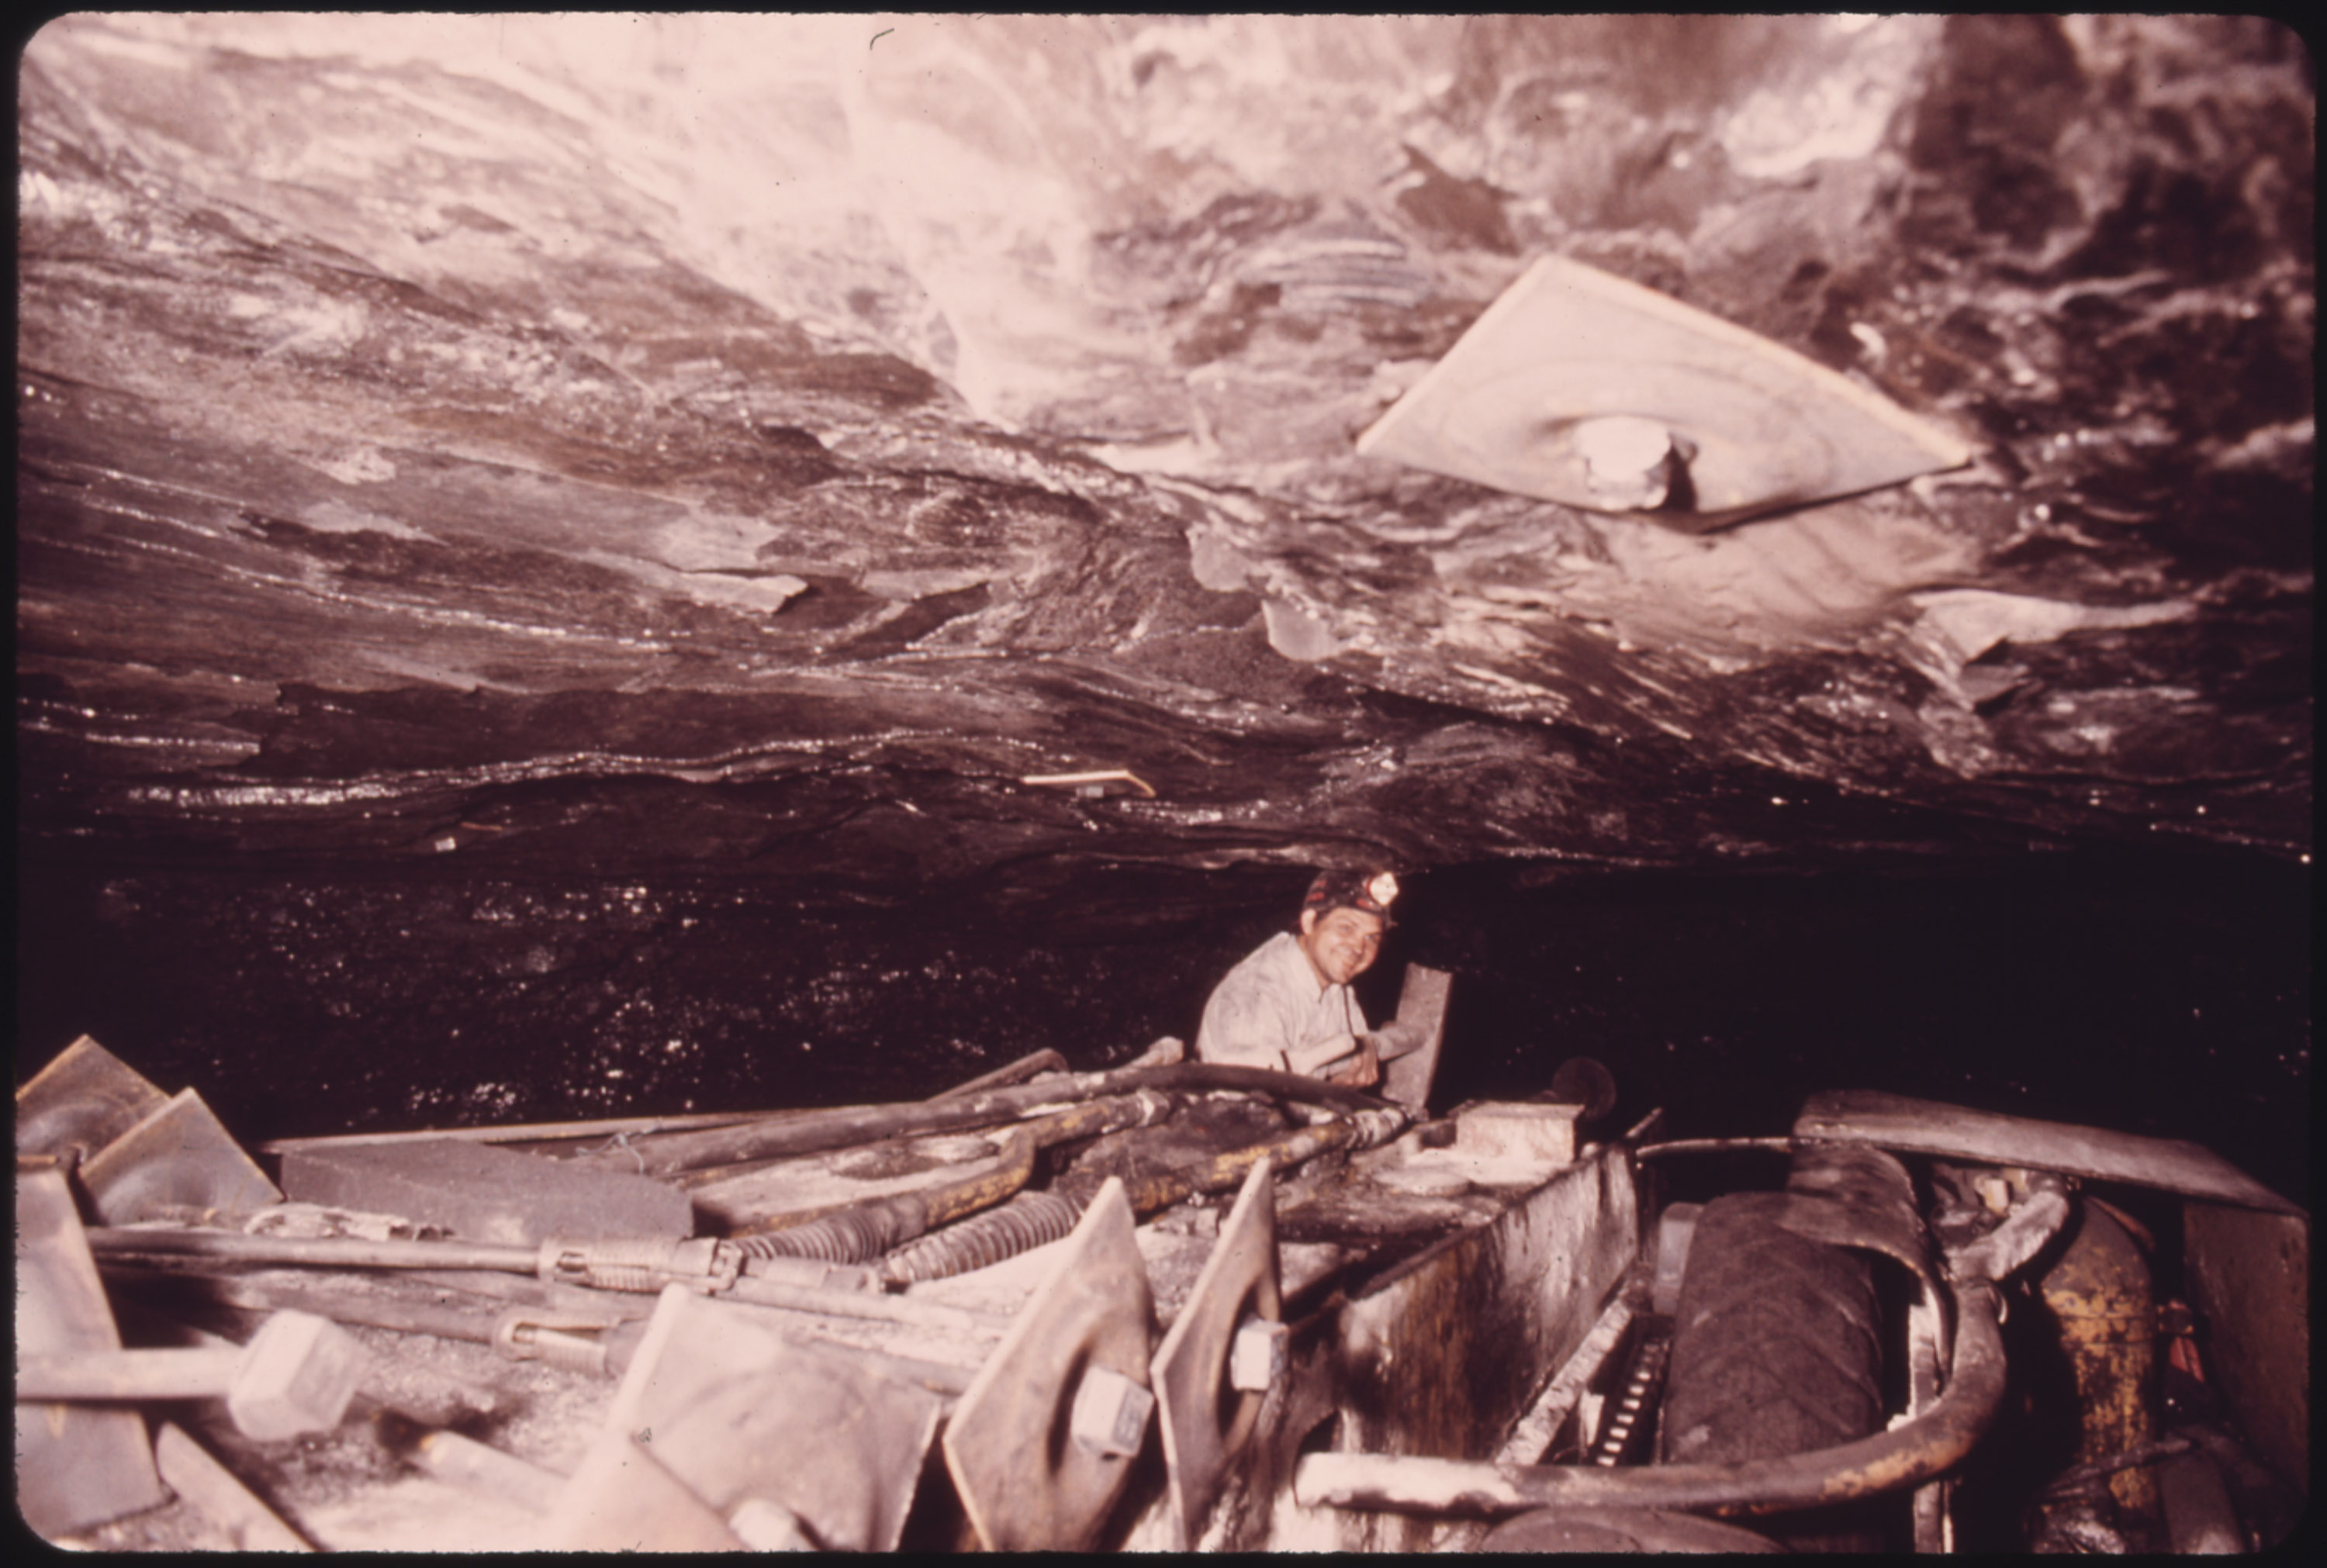 Miner Lee Caldwell, on a Self-Propelled Roof Bolting Machine in a Mine of the Tennessee Consolidated Coal Company near Jasper and Chattanooga 08/1974